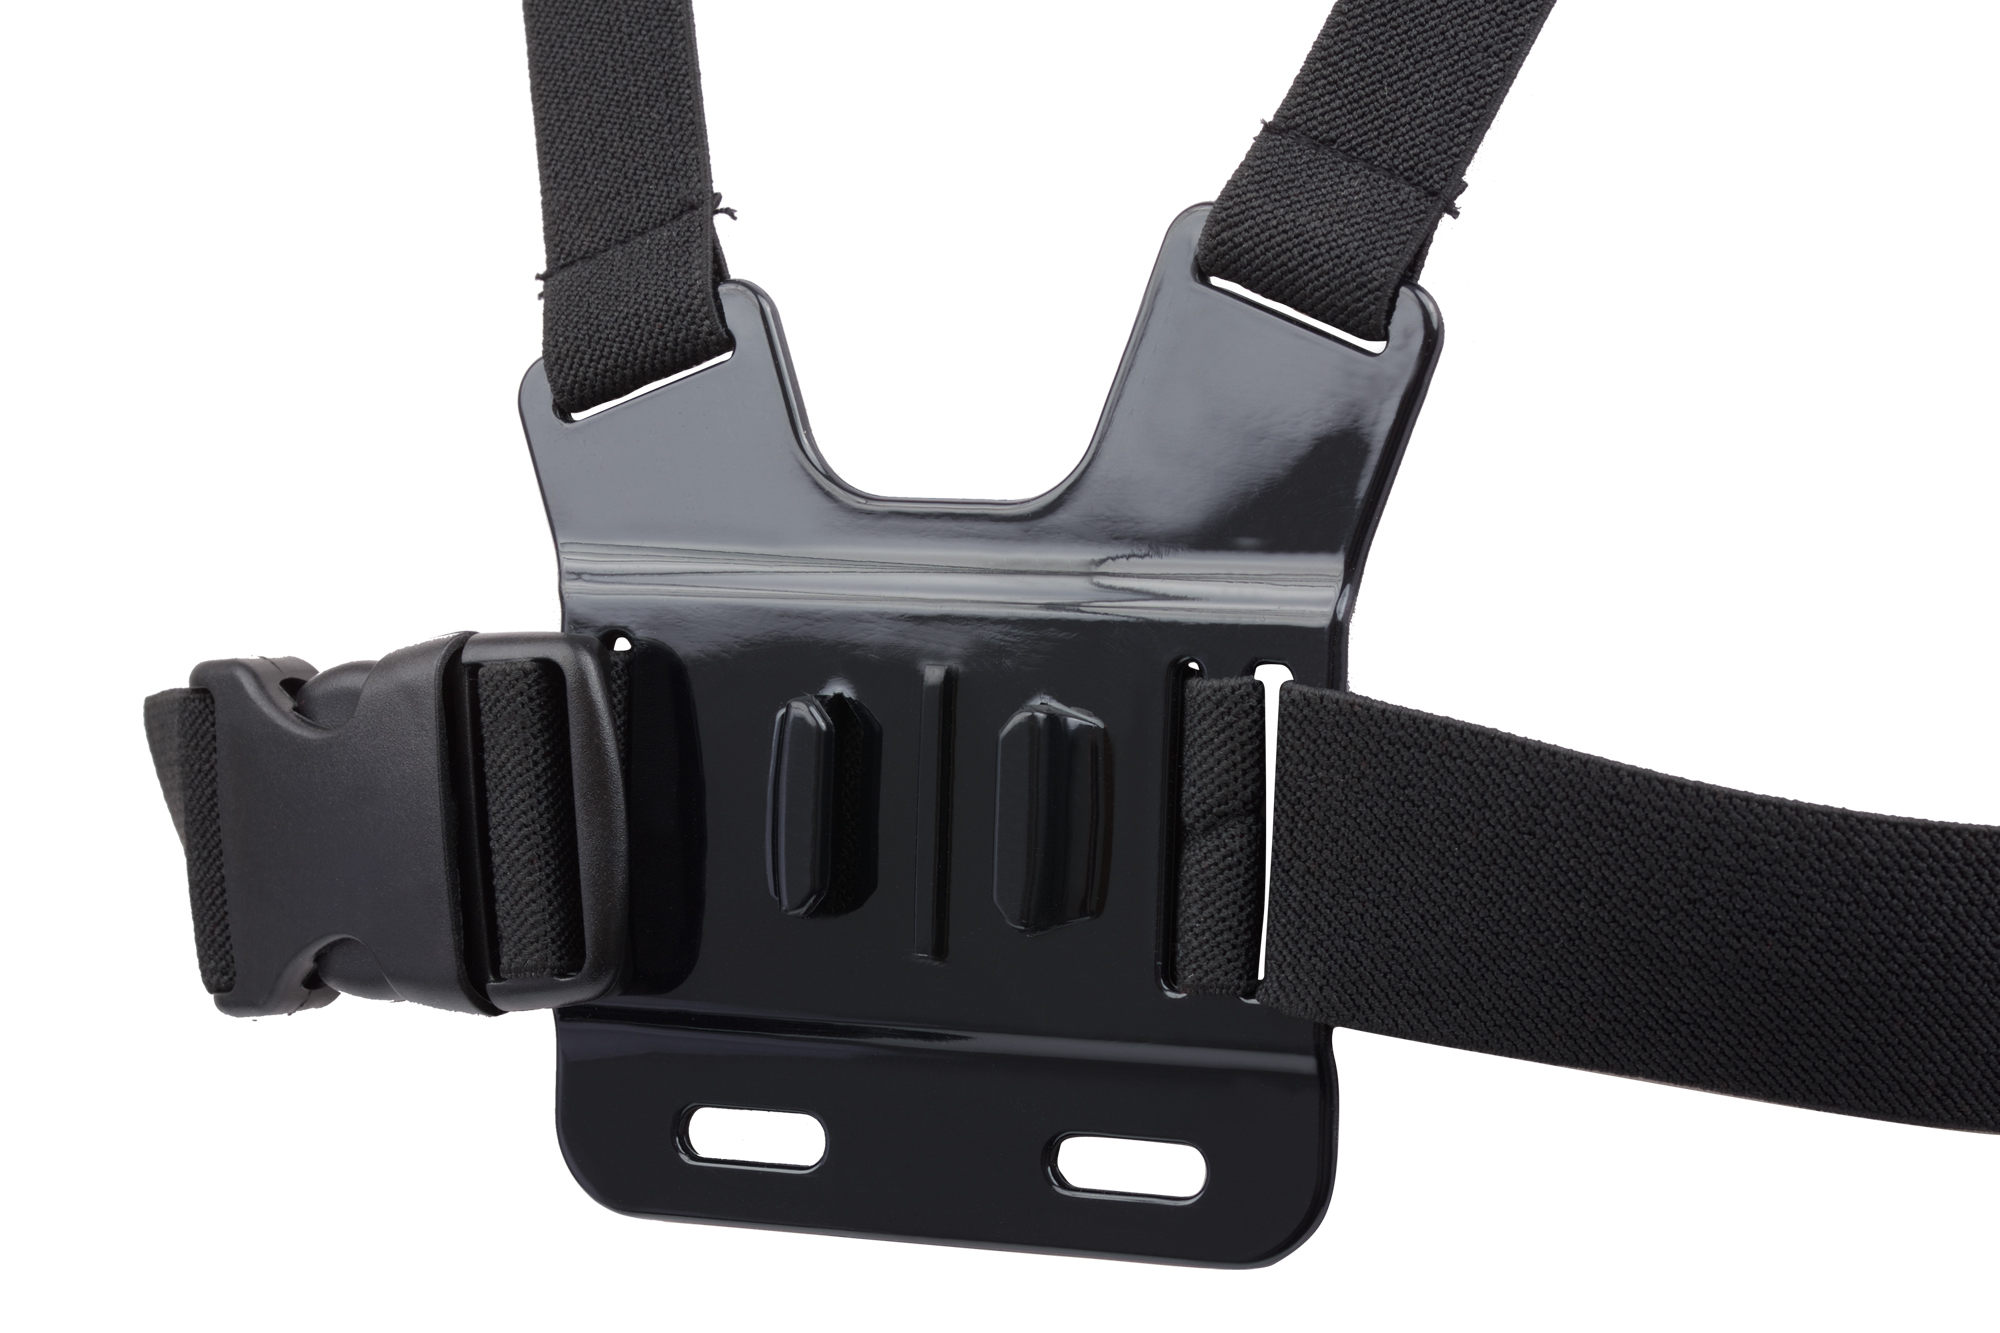 Praktica Chest Harness Mount Strap For GoPro And Action Cams